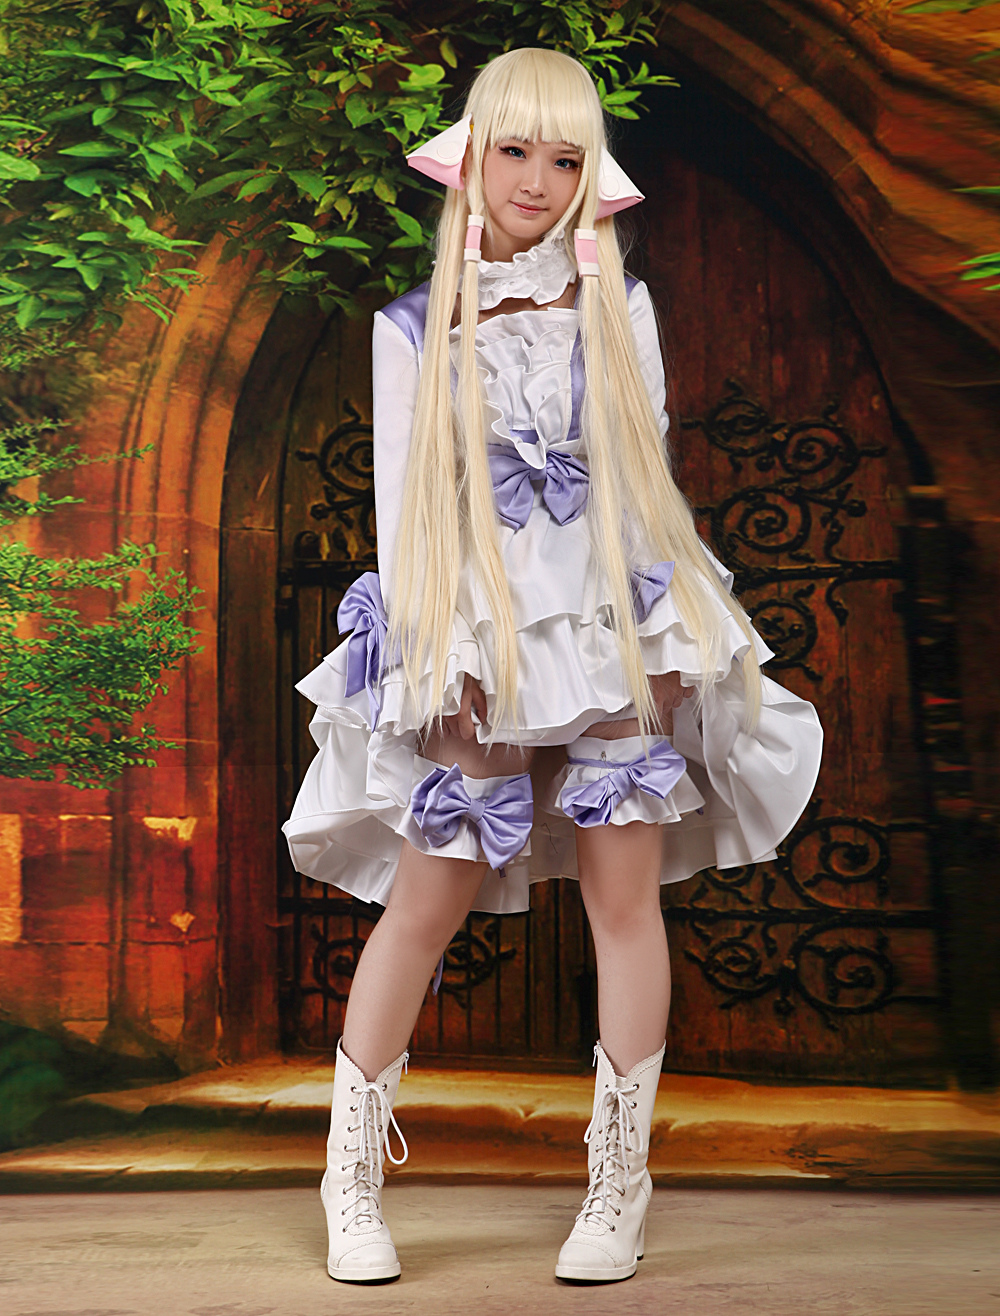 Buy Chobits Chii Halloween Cosplay Costume Sweet Lolita Dress Halloween for $114.99 in Milanoo store